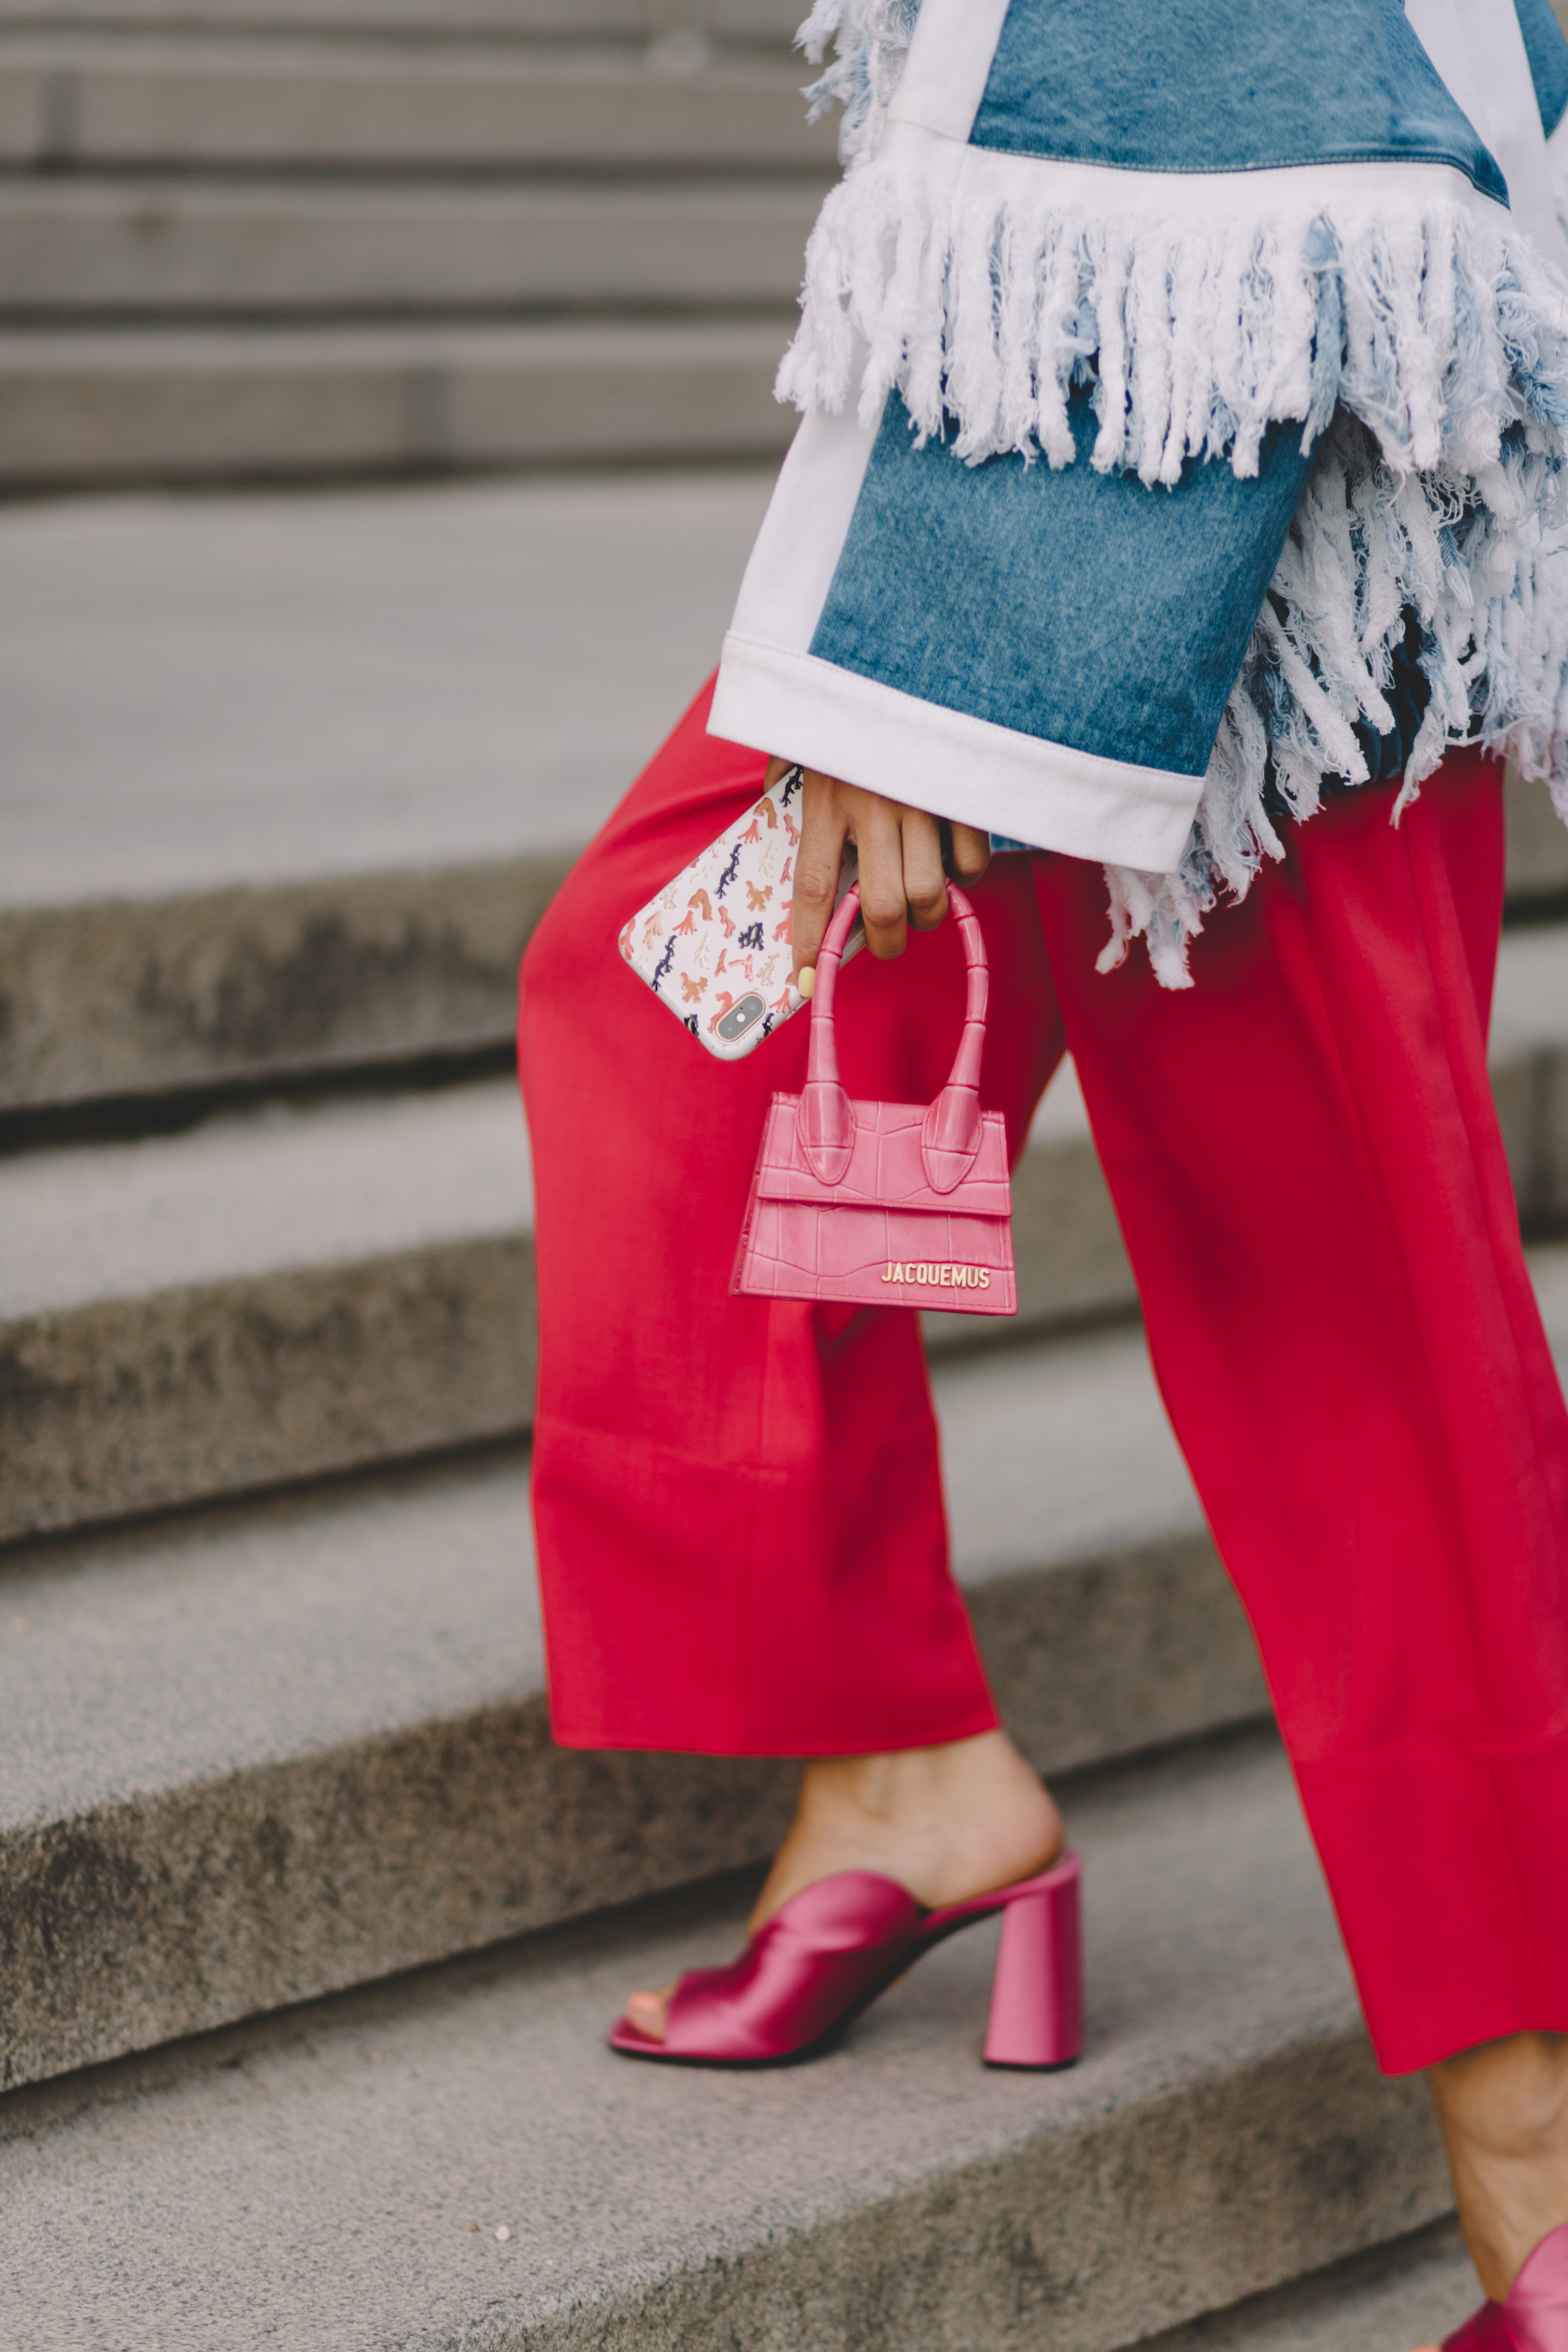 The 2020 summer trends that every woman needs to know